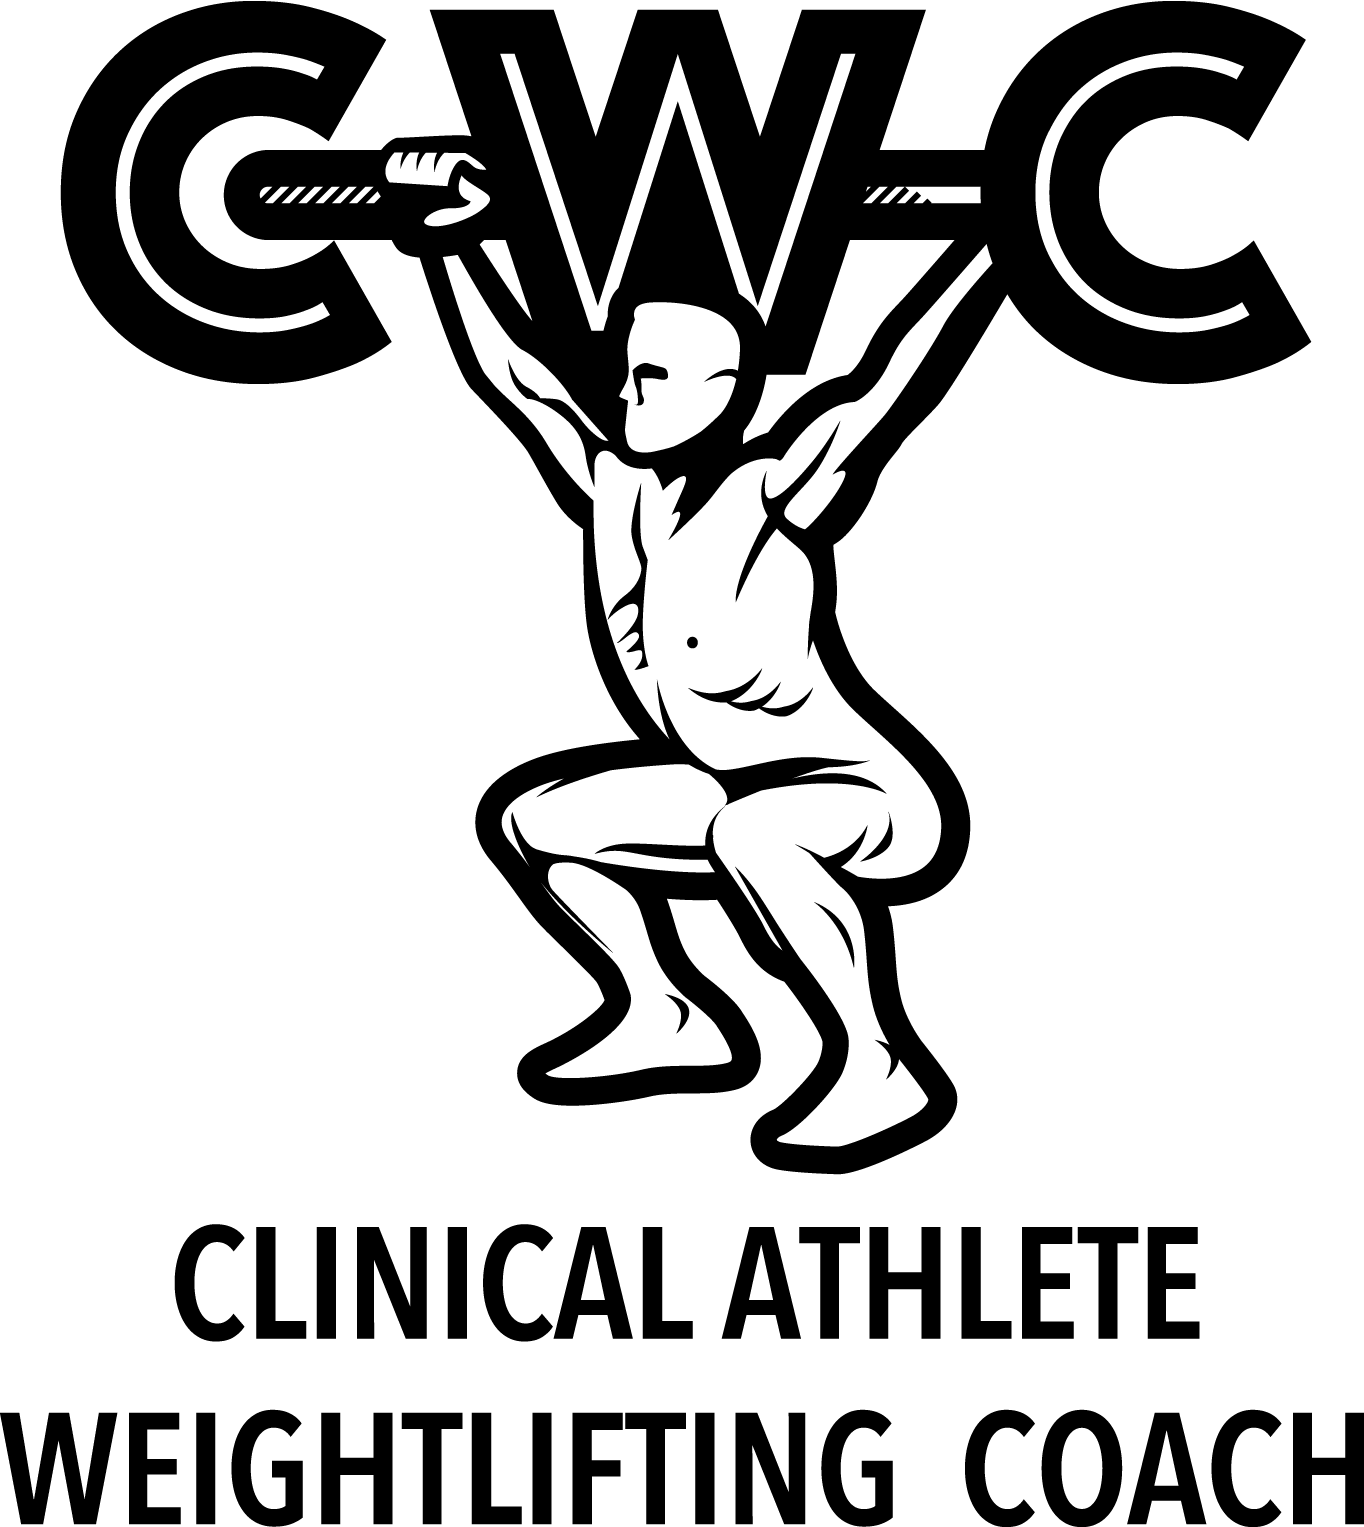 Cwc Seminar About